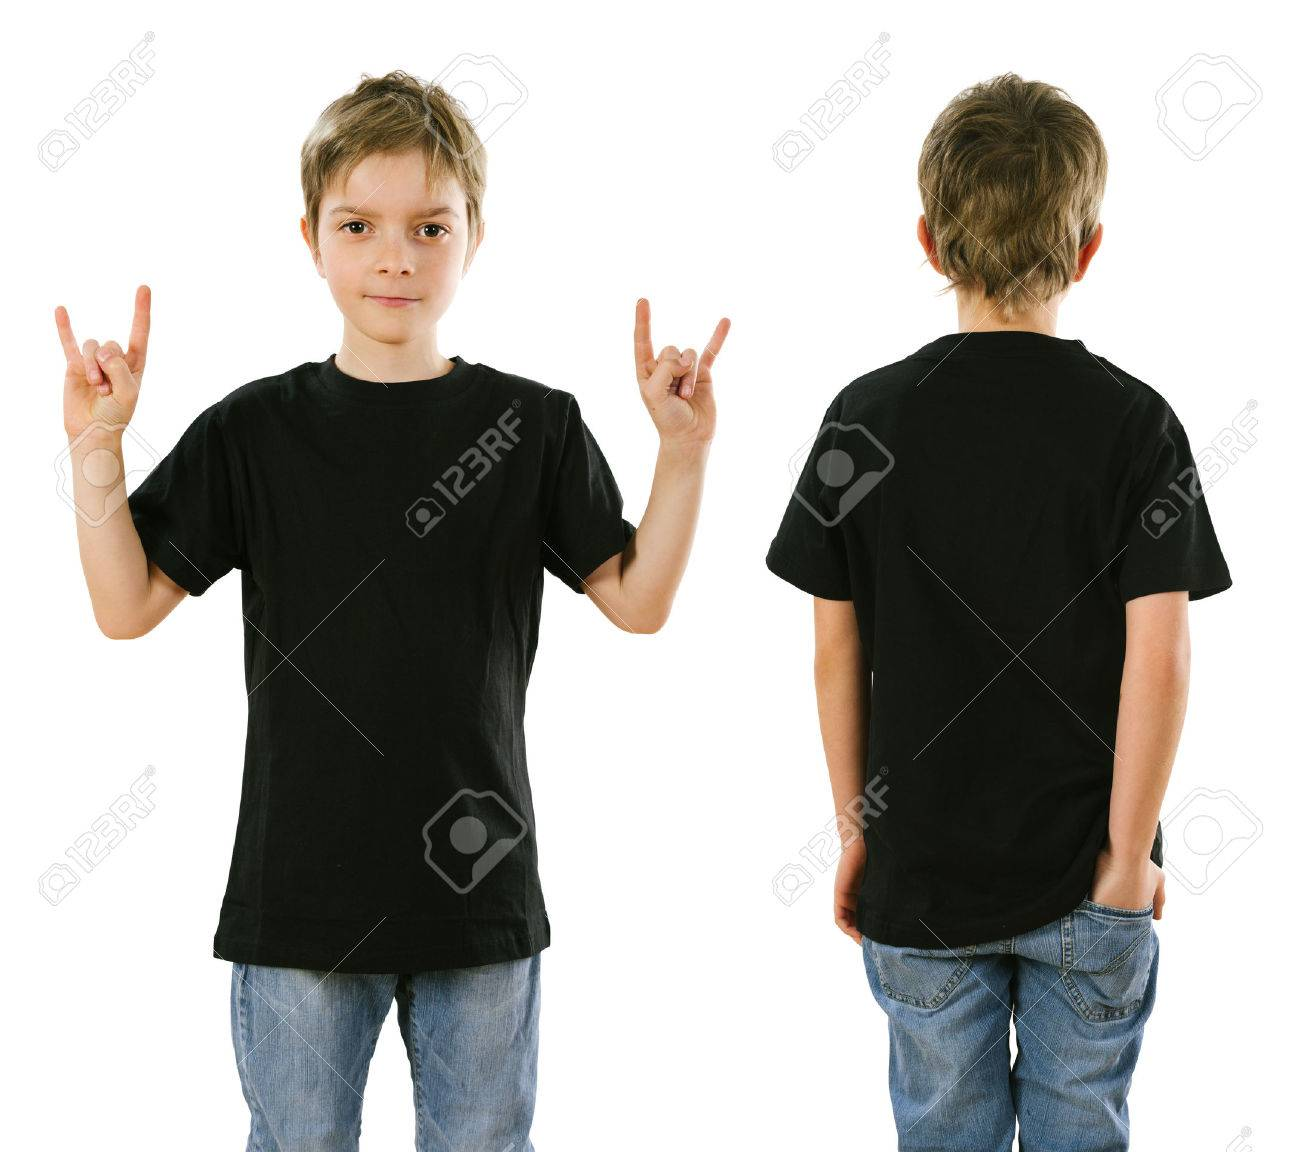 Blank black t shirt front and back - Stock Photo Young Boy With Blank Black T Shirt Front And Back Ready For Your Design Or Artwork